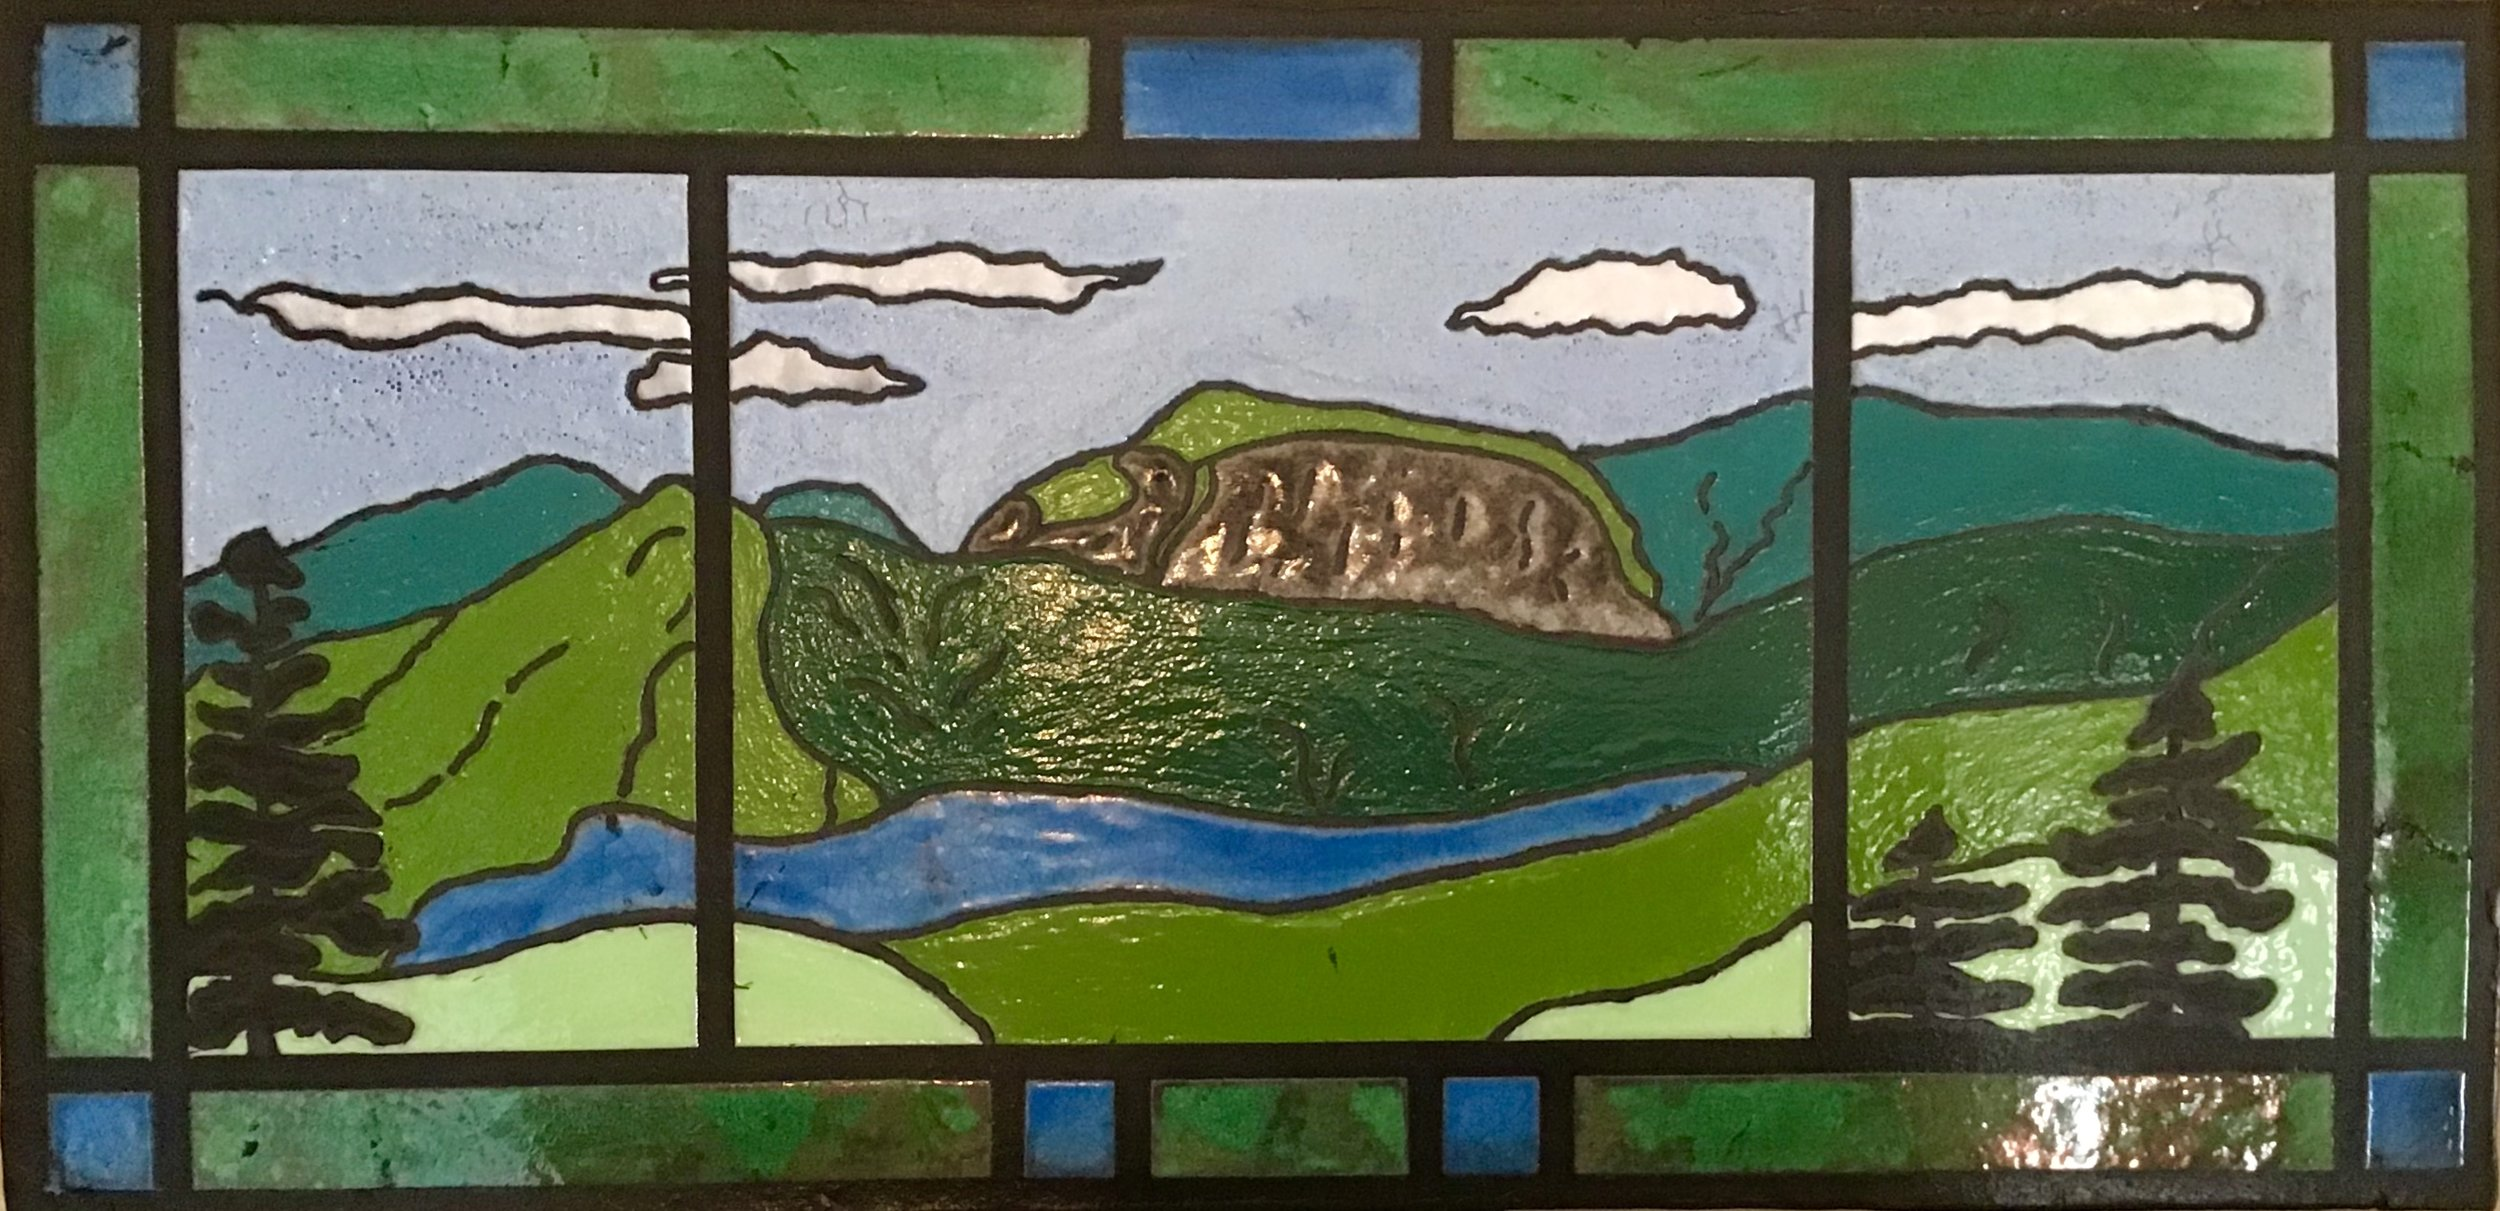 Table Rock Summer - Arts and Crafts Series